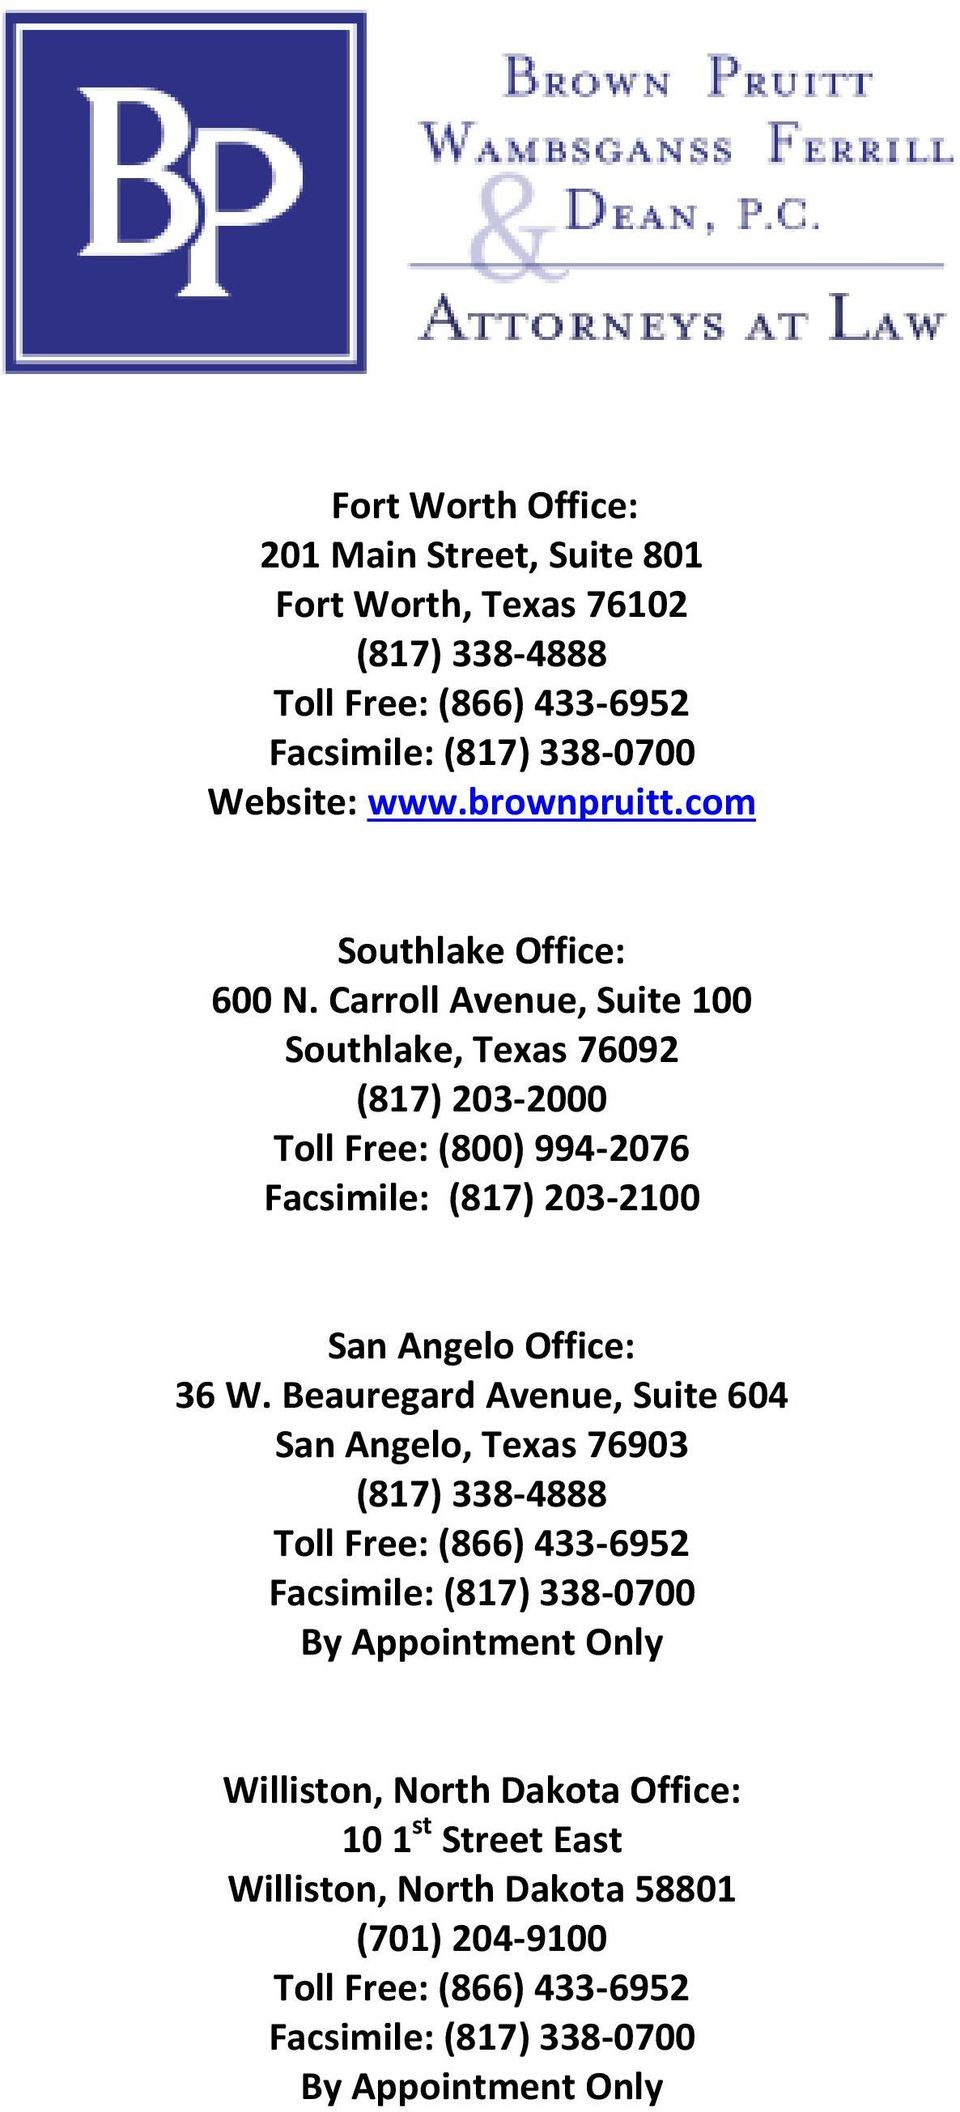 Carroll Avenue, Suite 100 Southlake, Texas 76092 (817) 203-2000 Toll Free: (800) 994-2076 Facsimile: (817) 203-2100 San Angelo Office: 36 W.